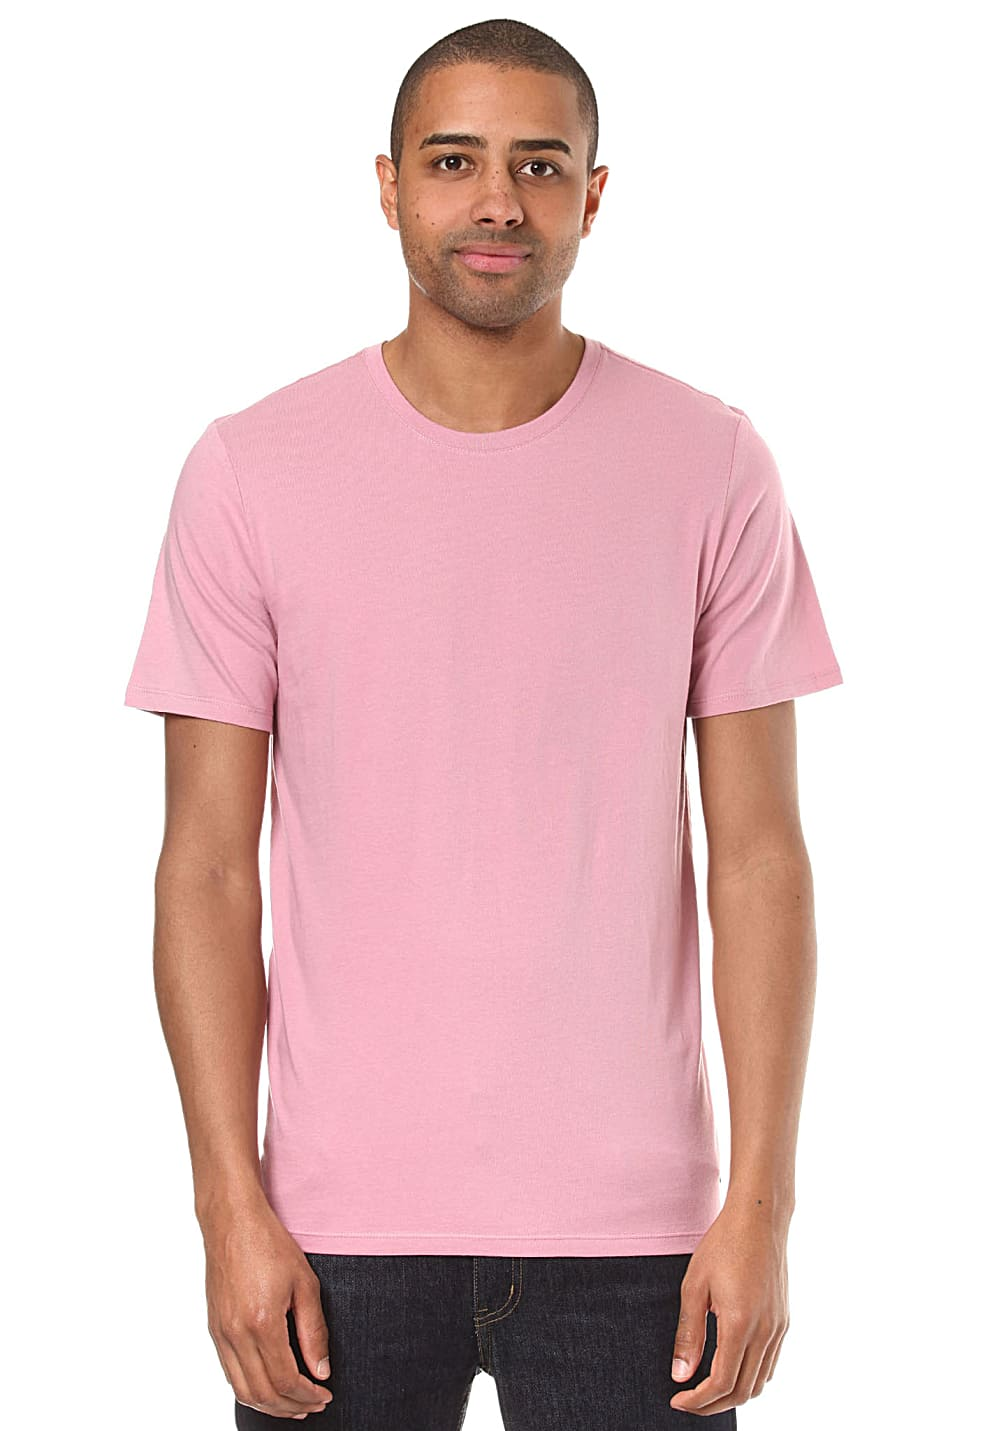 offer discounts great prices a few days away NIKE SB Essential - T-Shirt für Herren - Pink